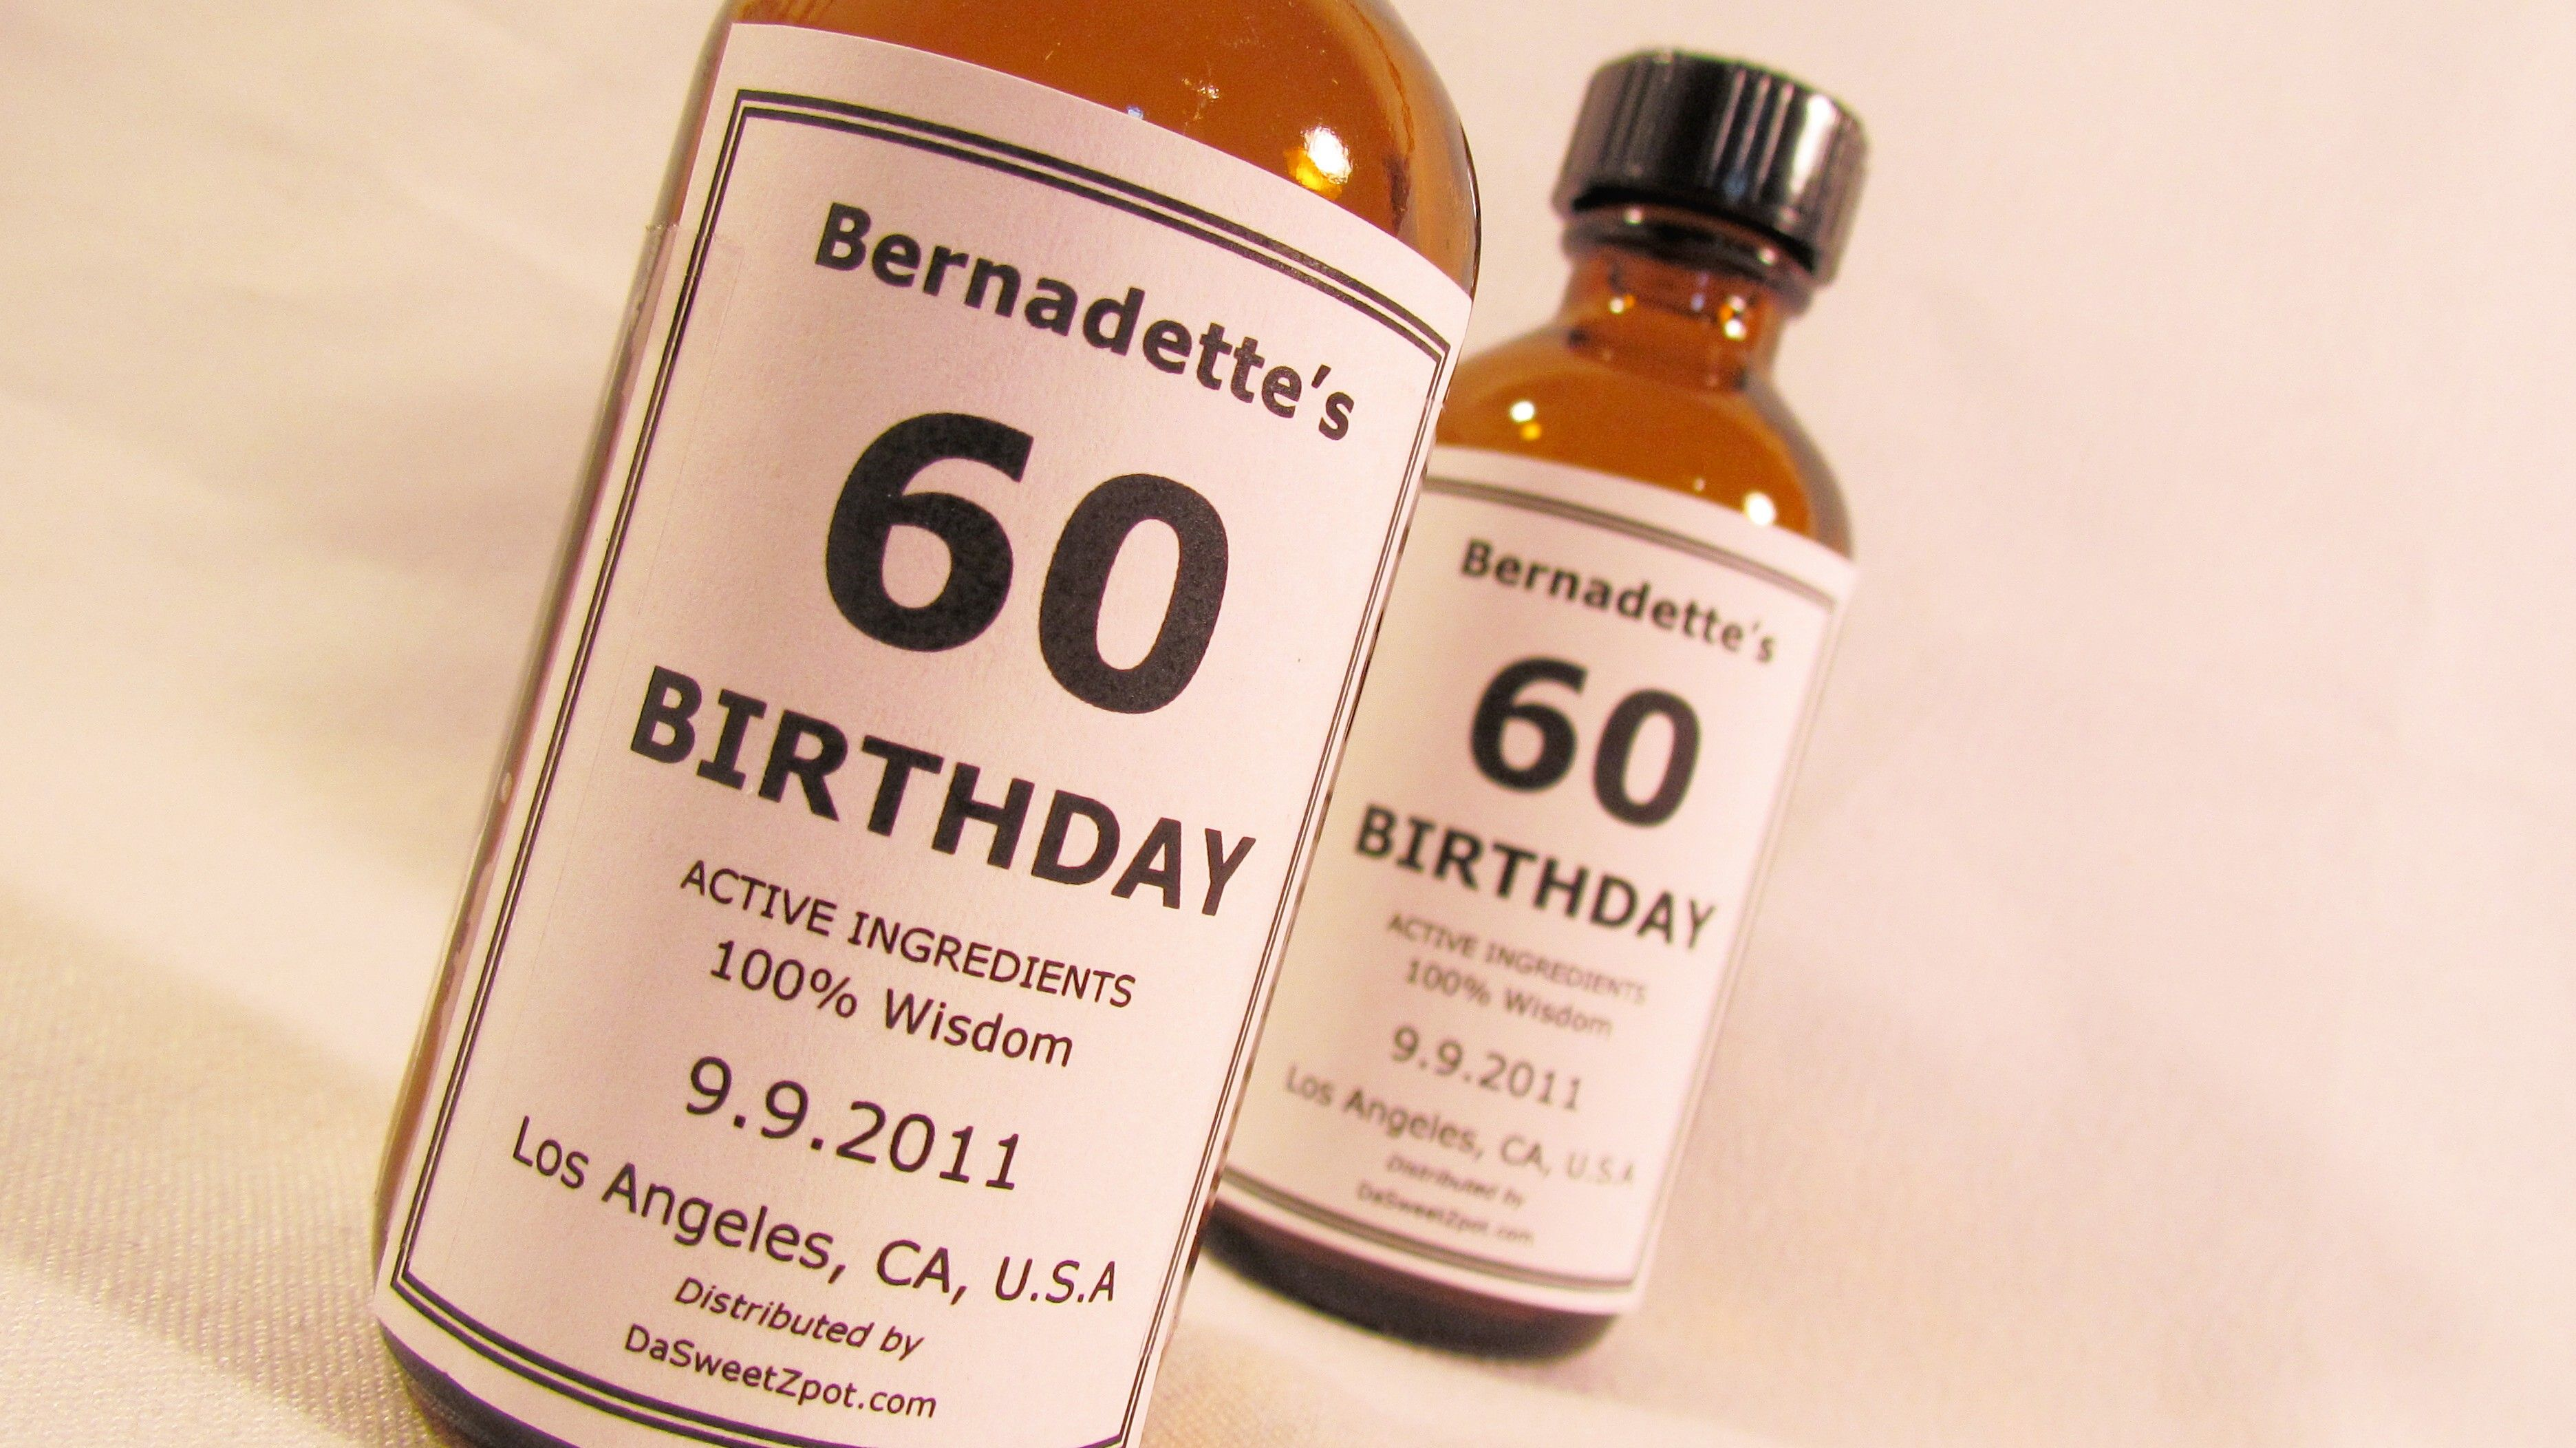 60th Birthday Party favors Ingre nts Wisdom Not really